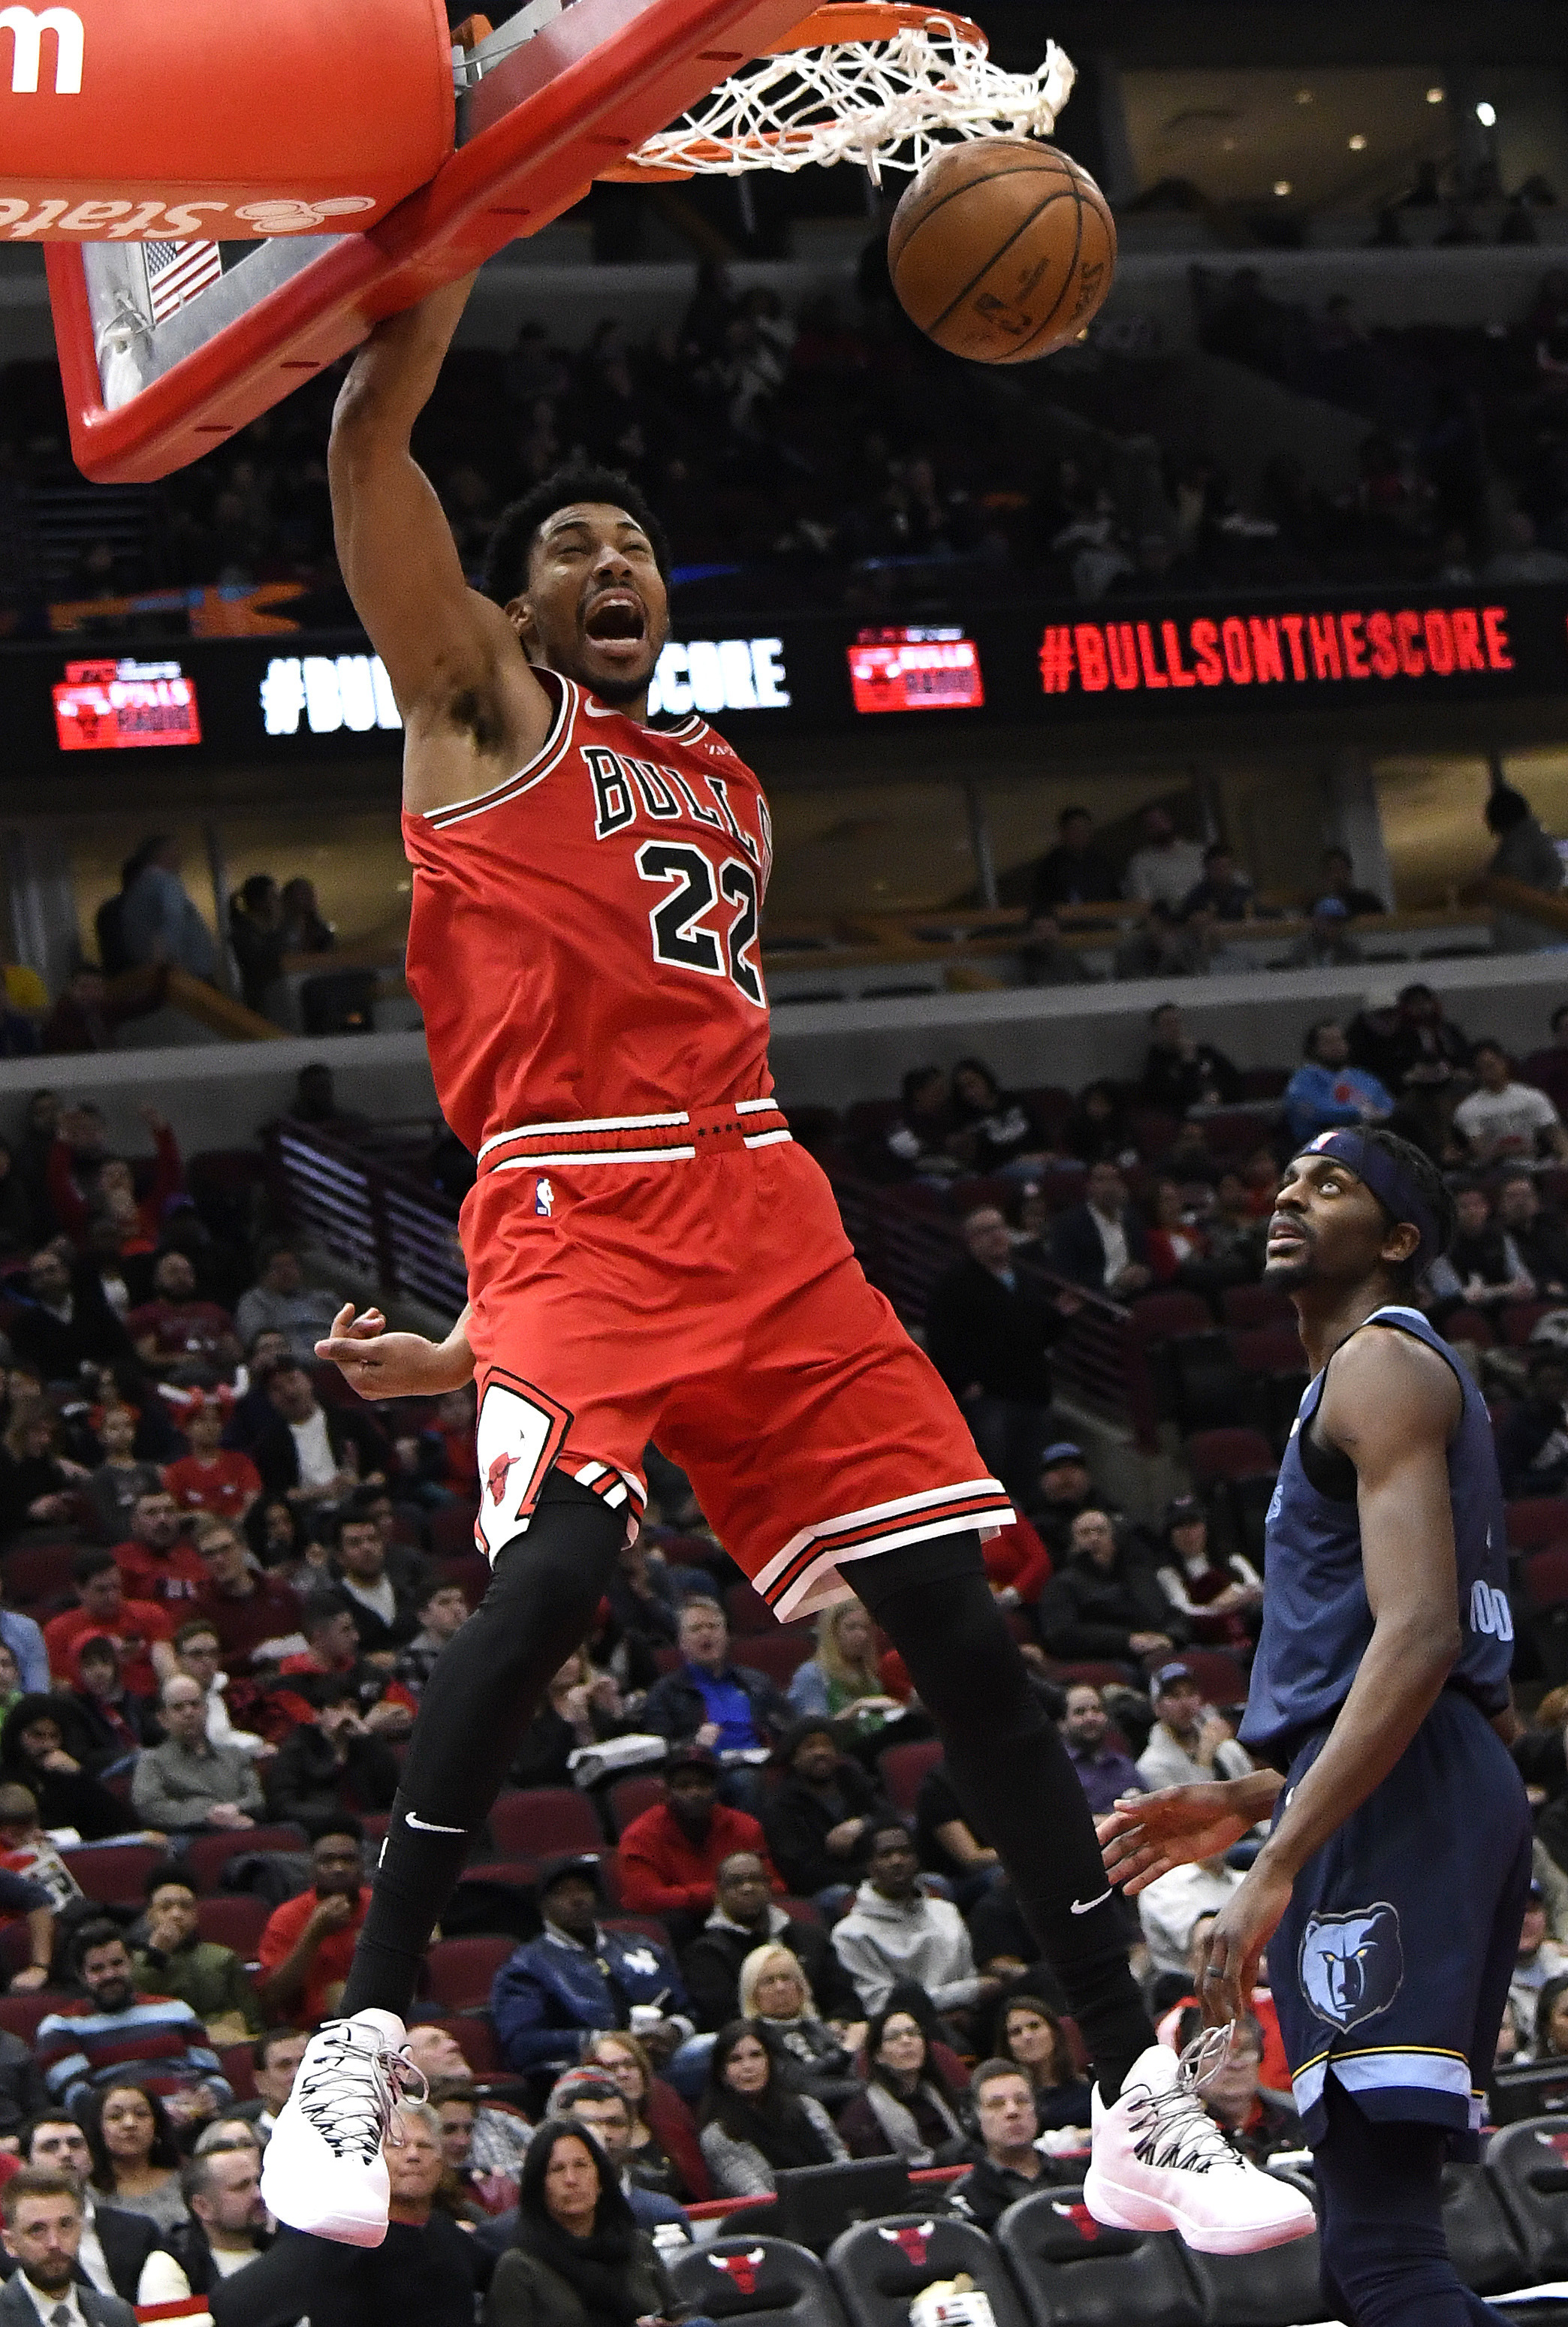 Porter scores career-high 37, Bulls beat Grizzlies 122-110